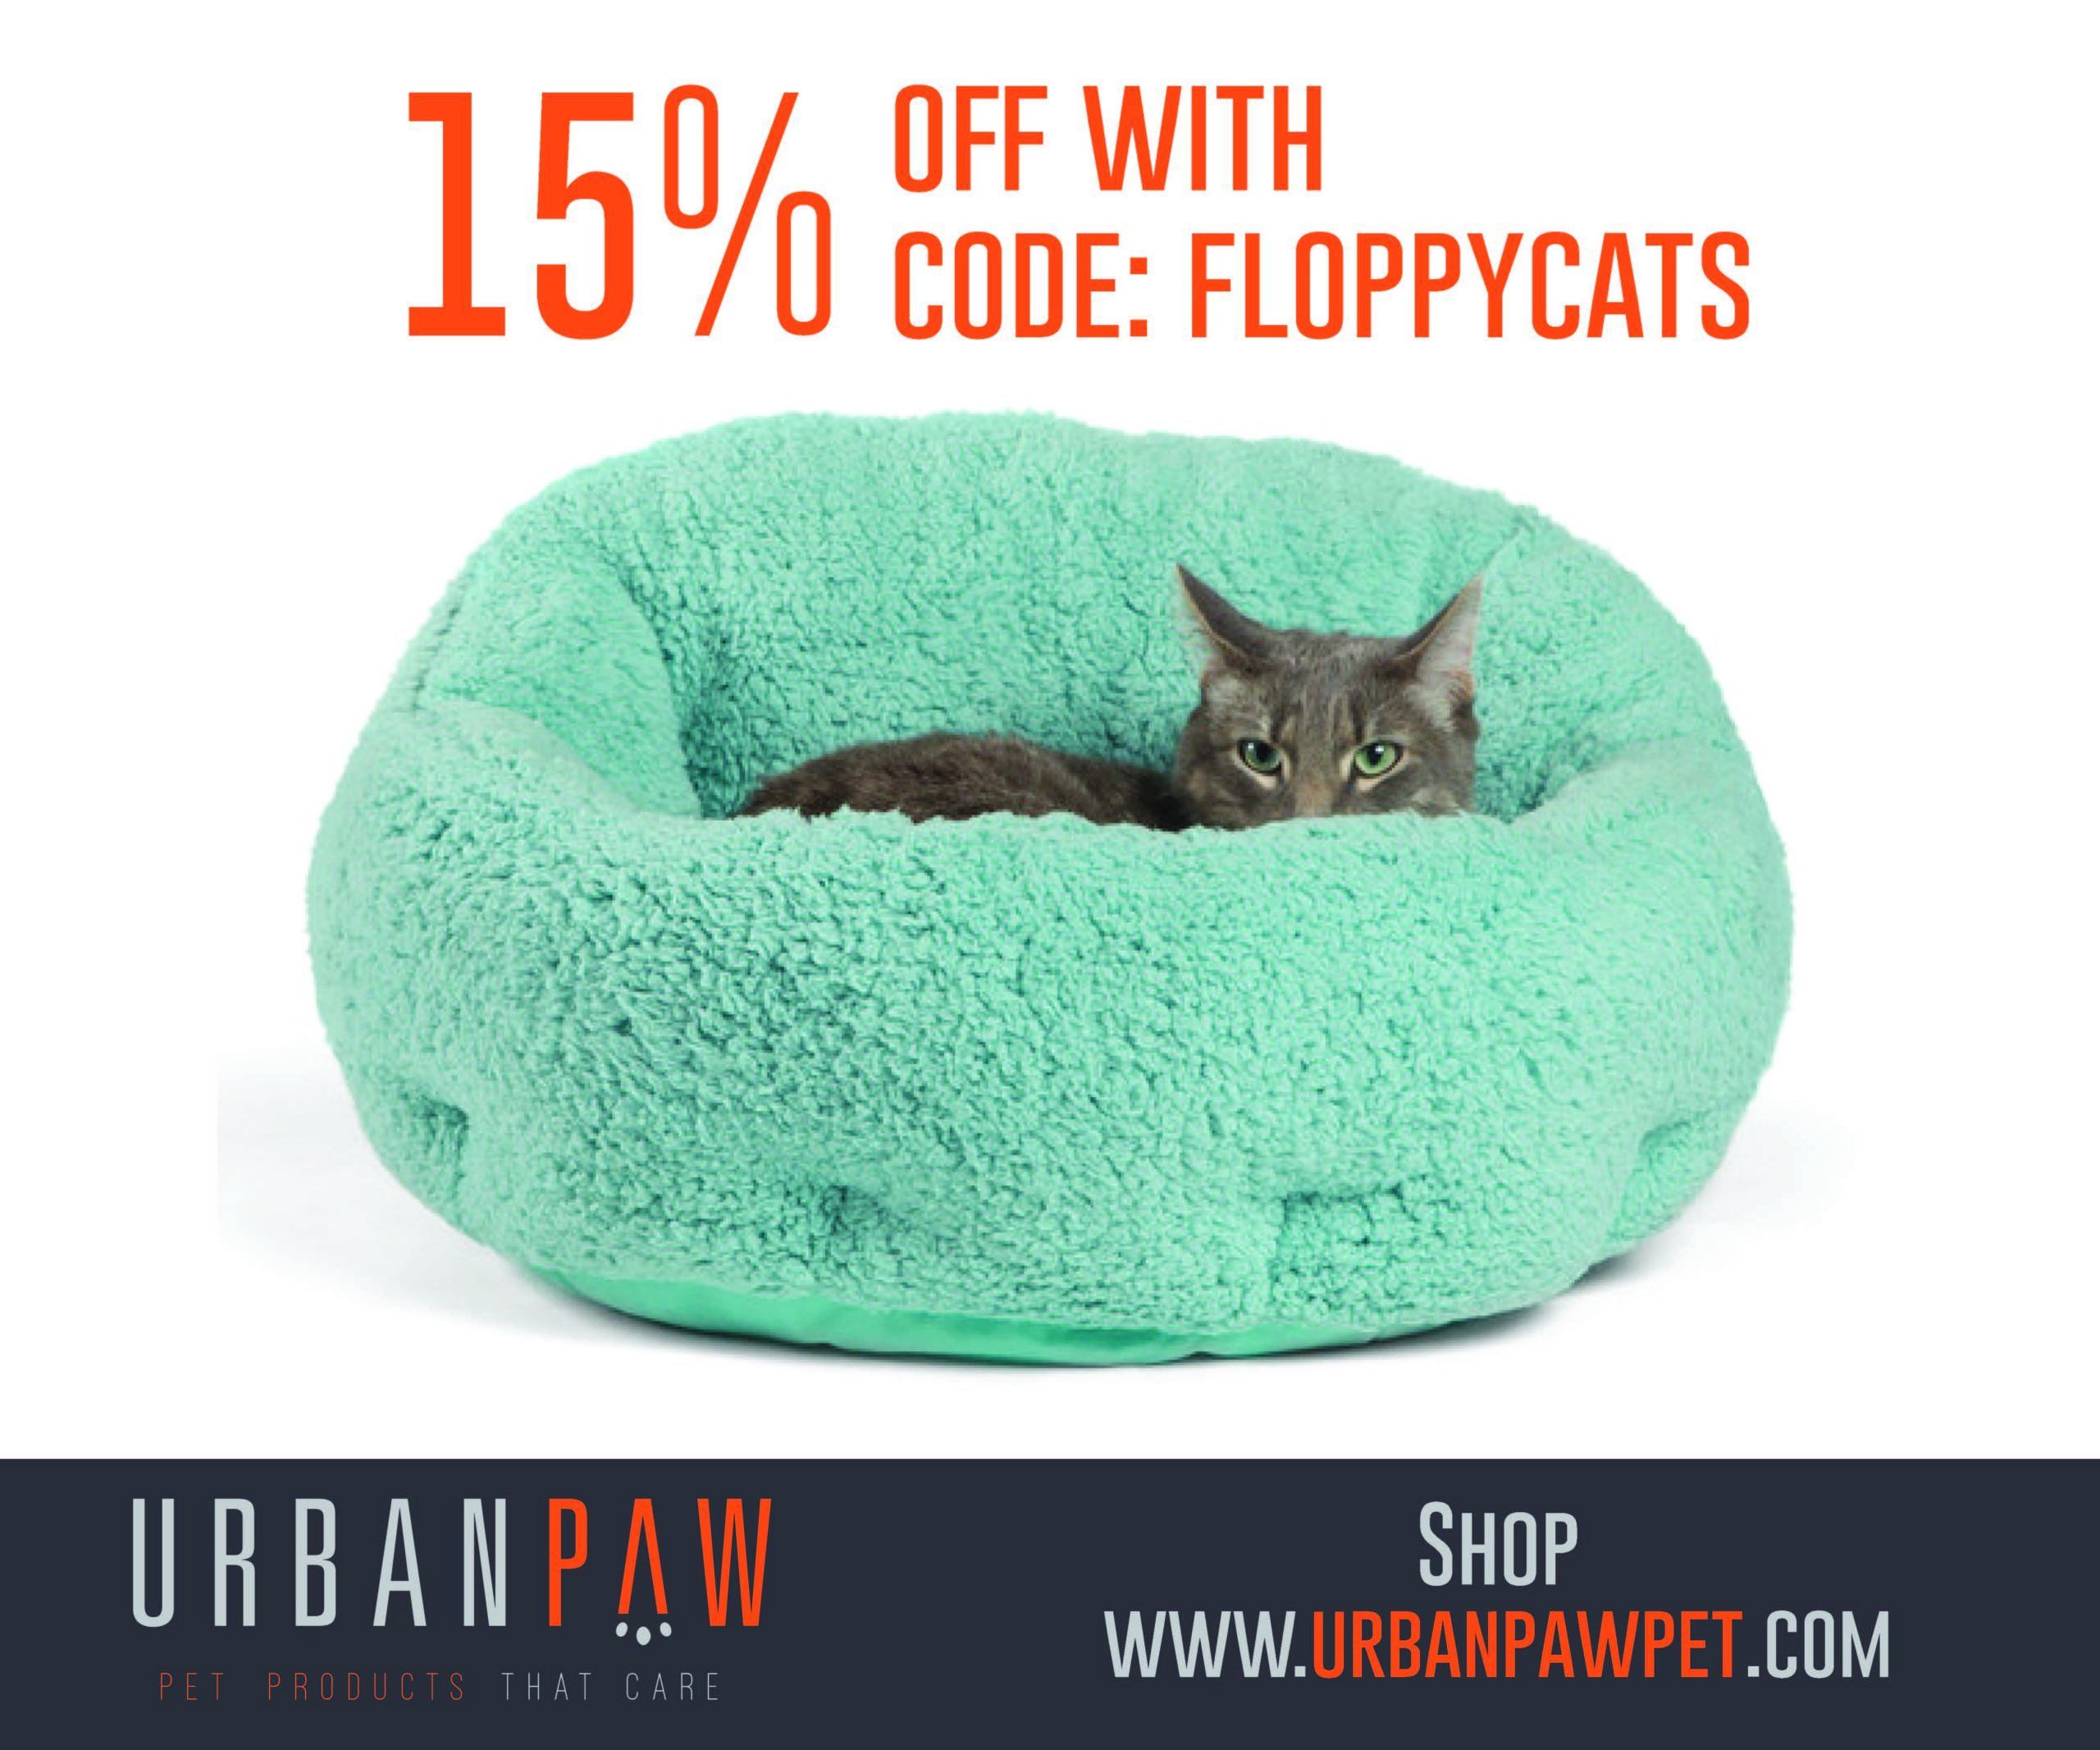 """The Urban Paw coupon code, """"FLOPPYCATS"""" will give you 15% Off on Urban Paw's website"""